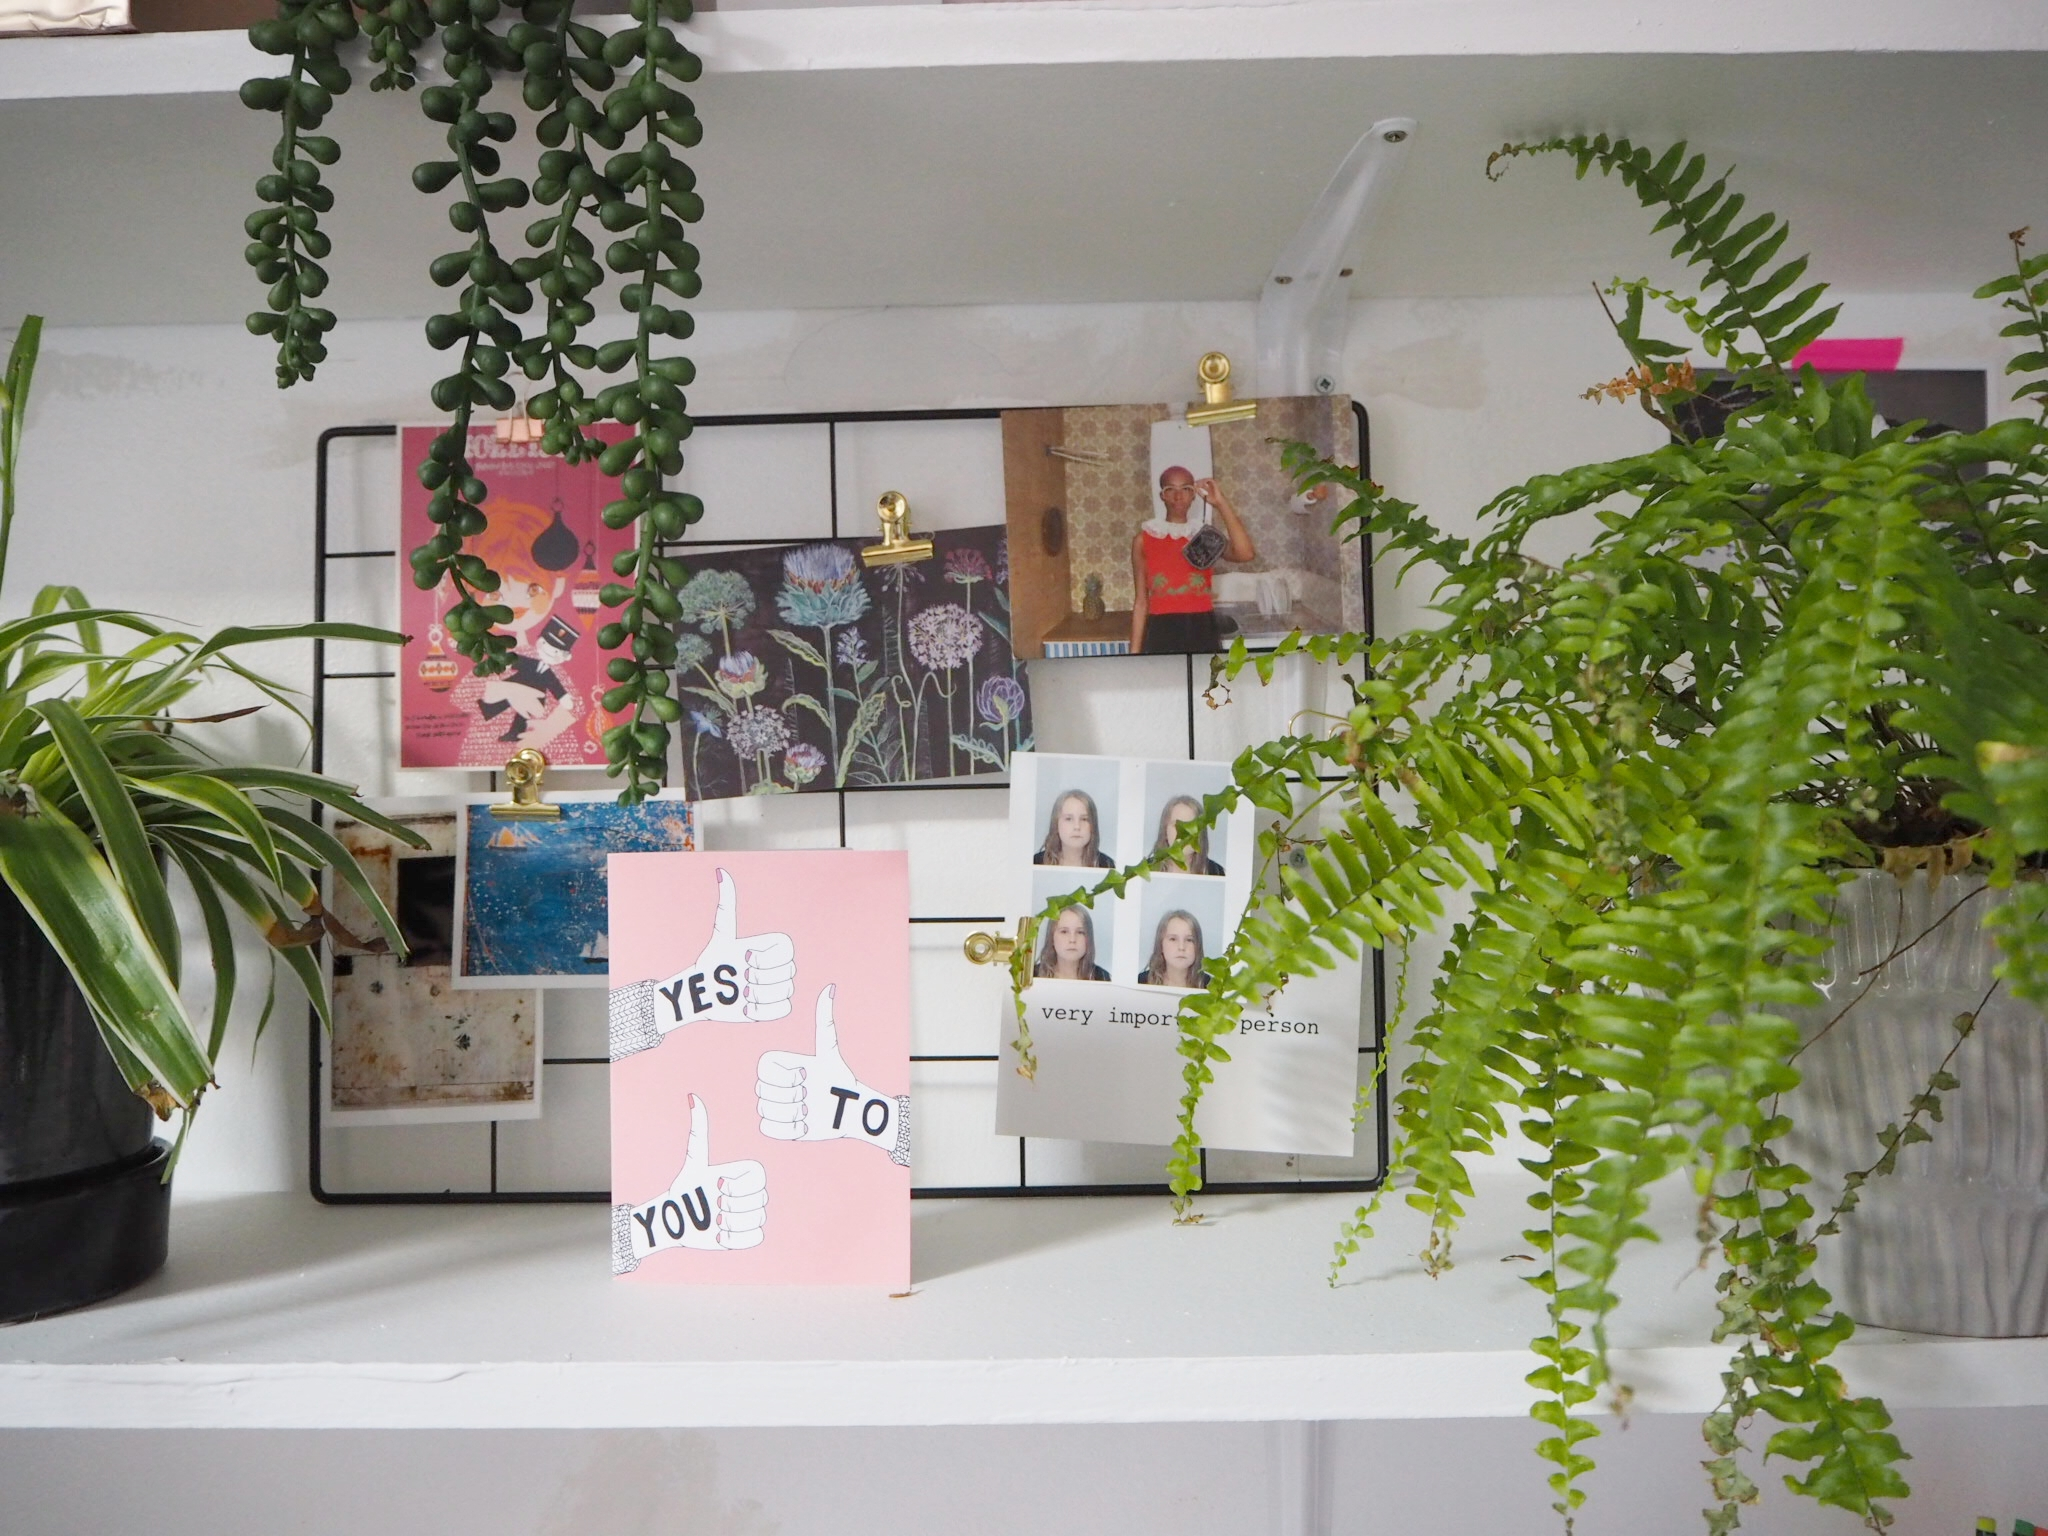 Countless opportunities for shelfie styling.  And another place for plants to die.